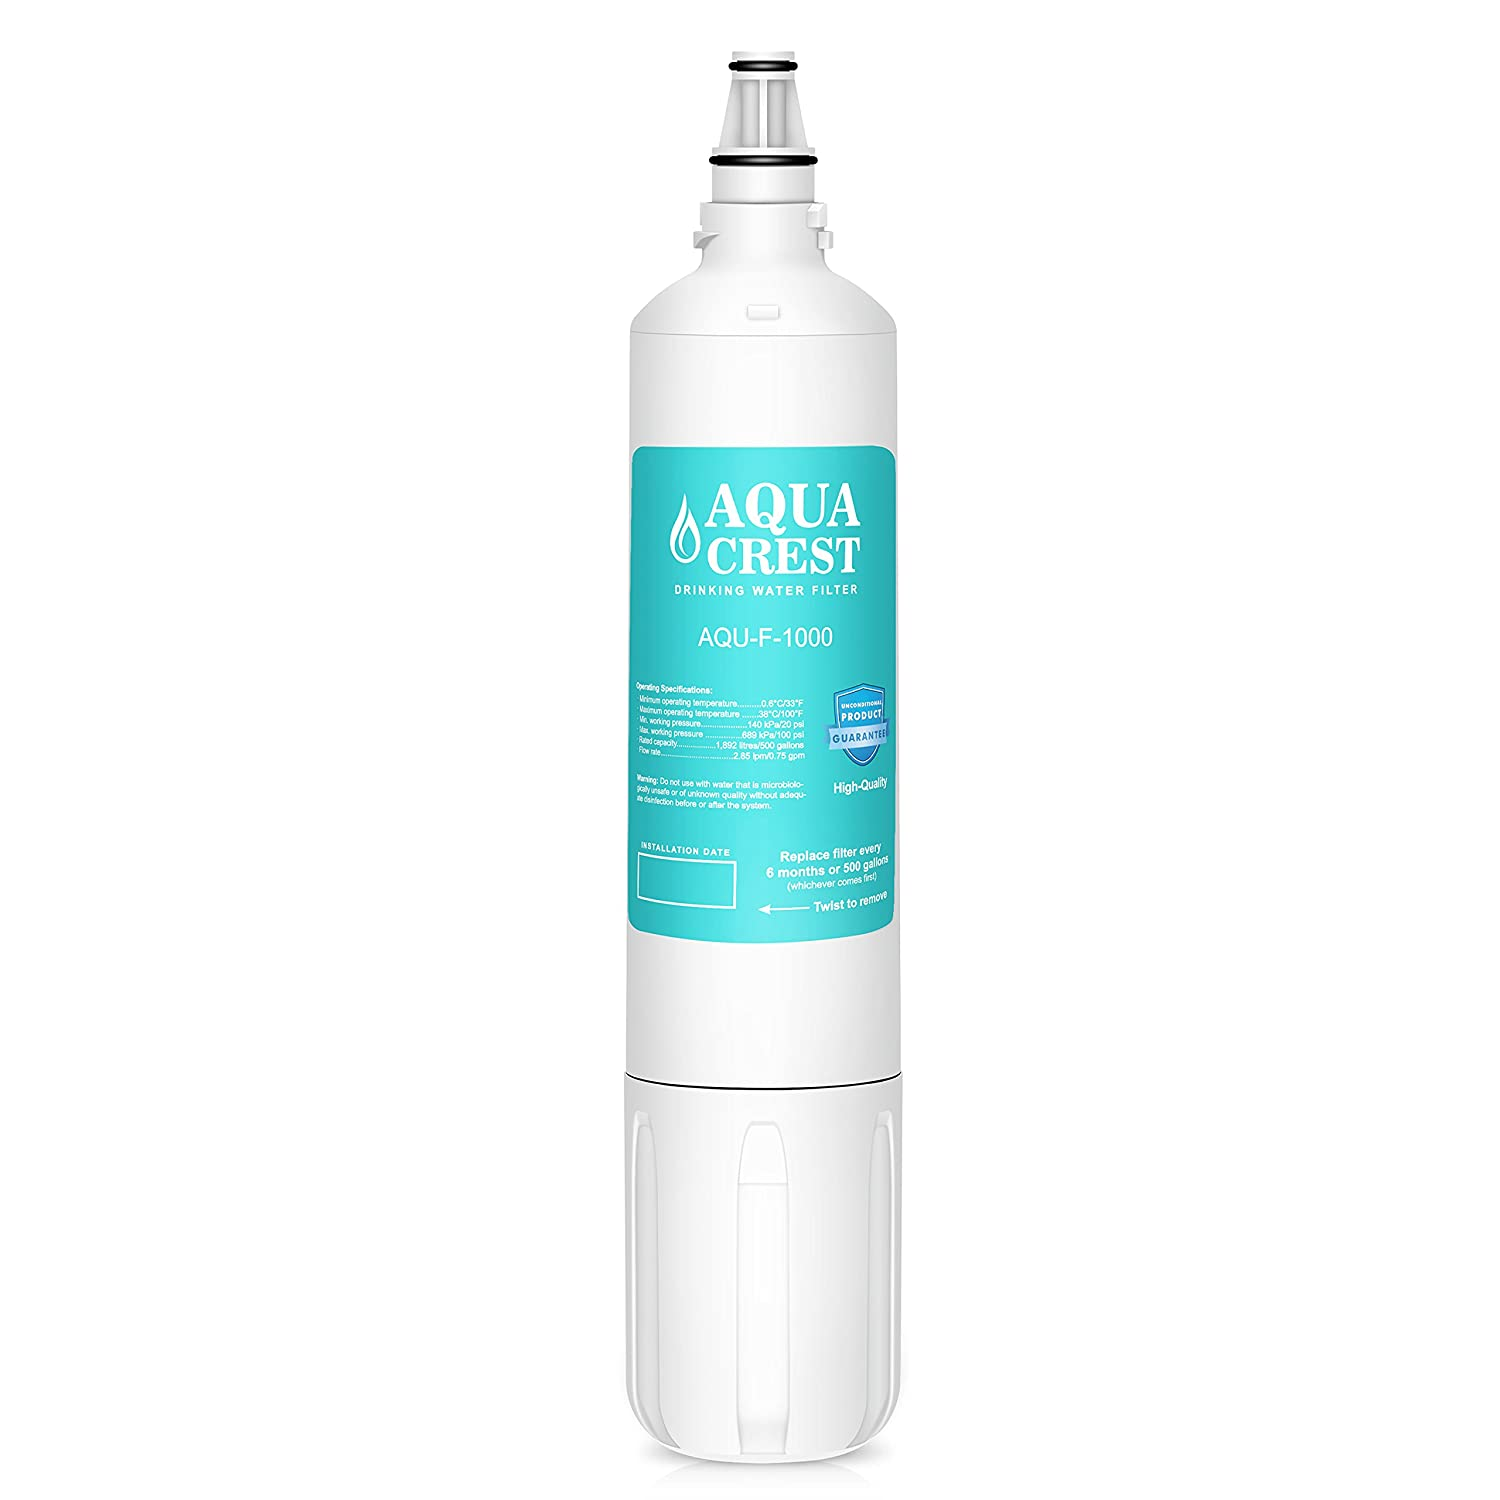 AQUACREST Replacement F-1000 Under Sink Water Filter, Compatible with InSinkErator F-1000, Sub Zero 4204490